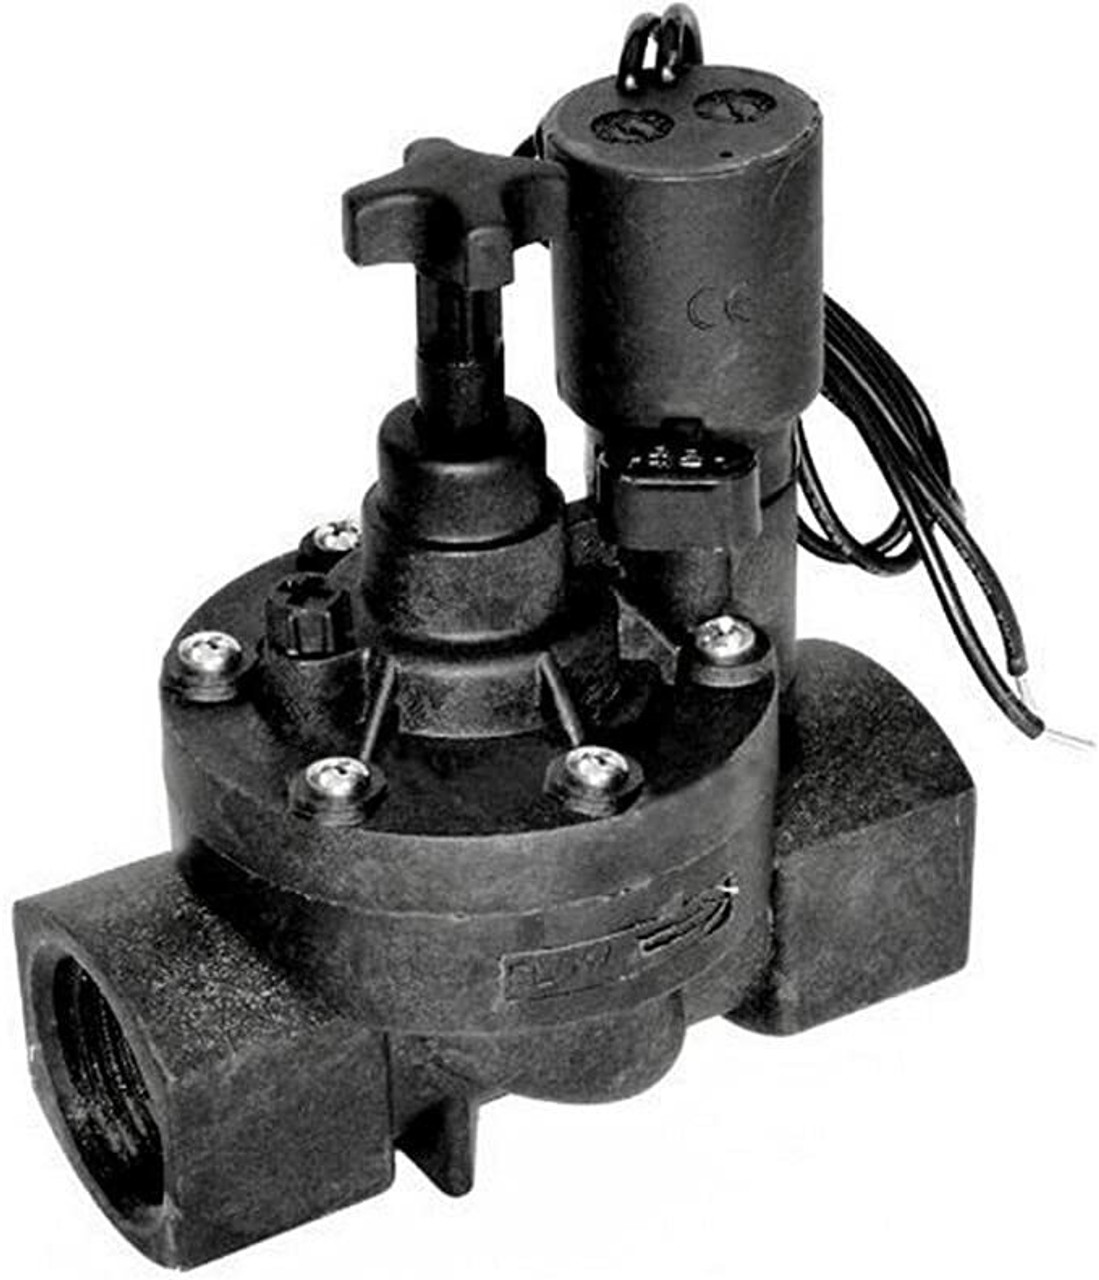 """Jandy Pro Series, Zodiac Pool Systems Inc, Levolor R-Kit 1"""" Plastic Valve, 24V Solenoid With Flow Control, Color: Gray, Size: 1"""""""